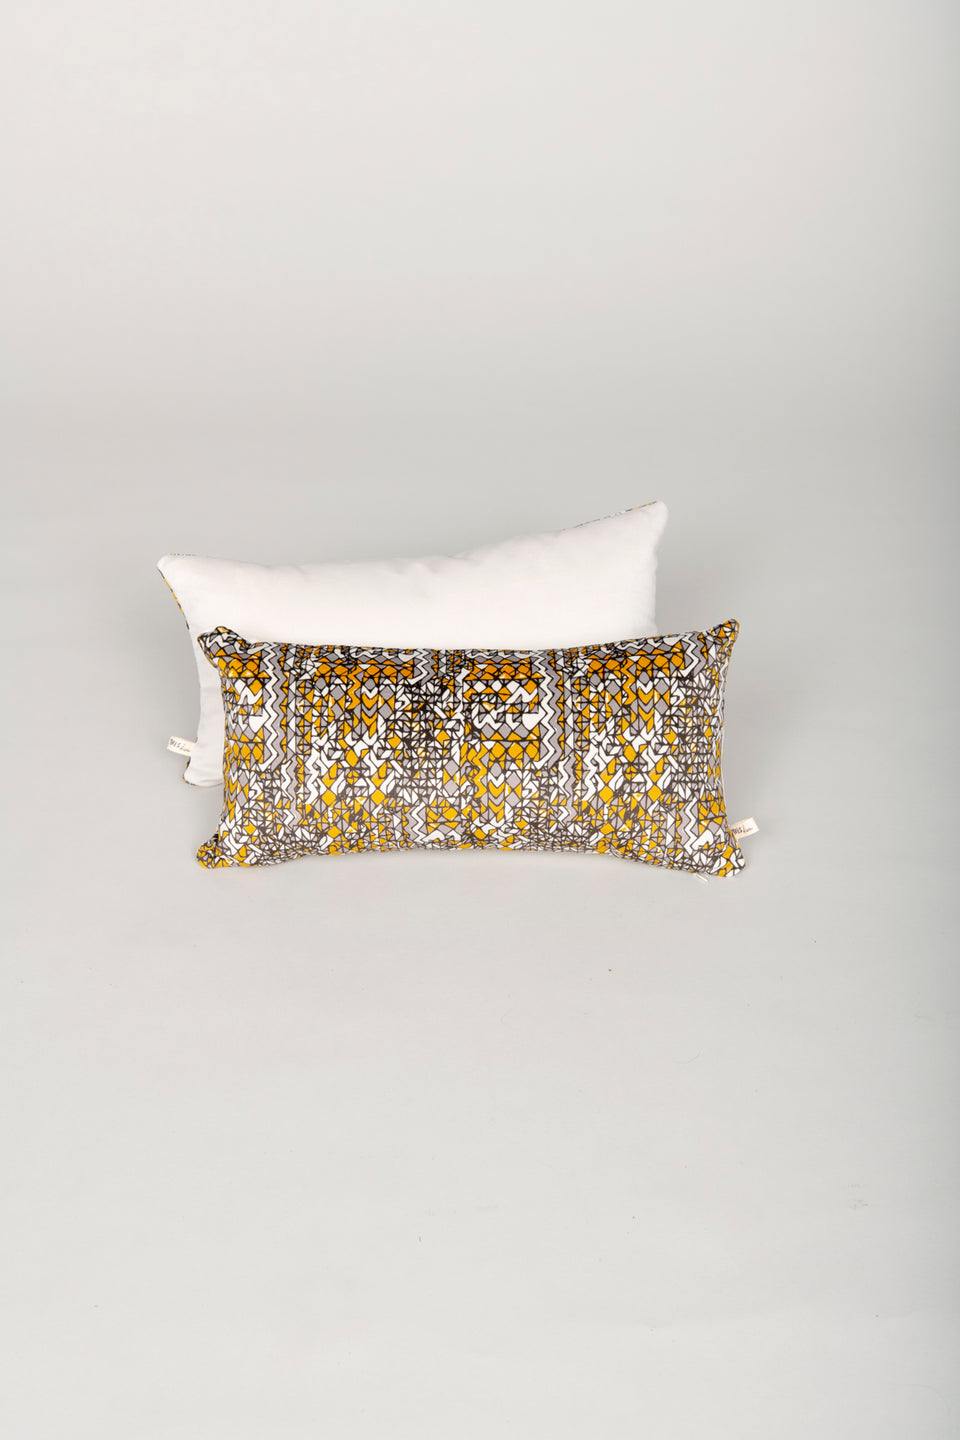 Cushion cover - Early Thaw